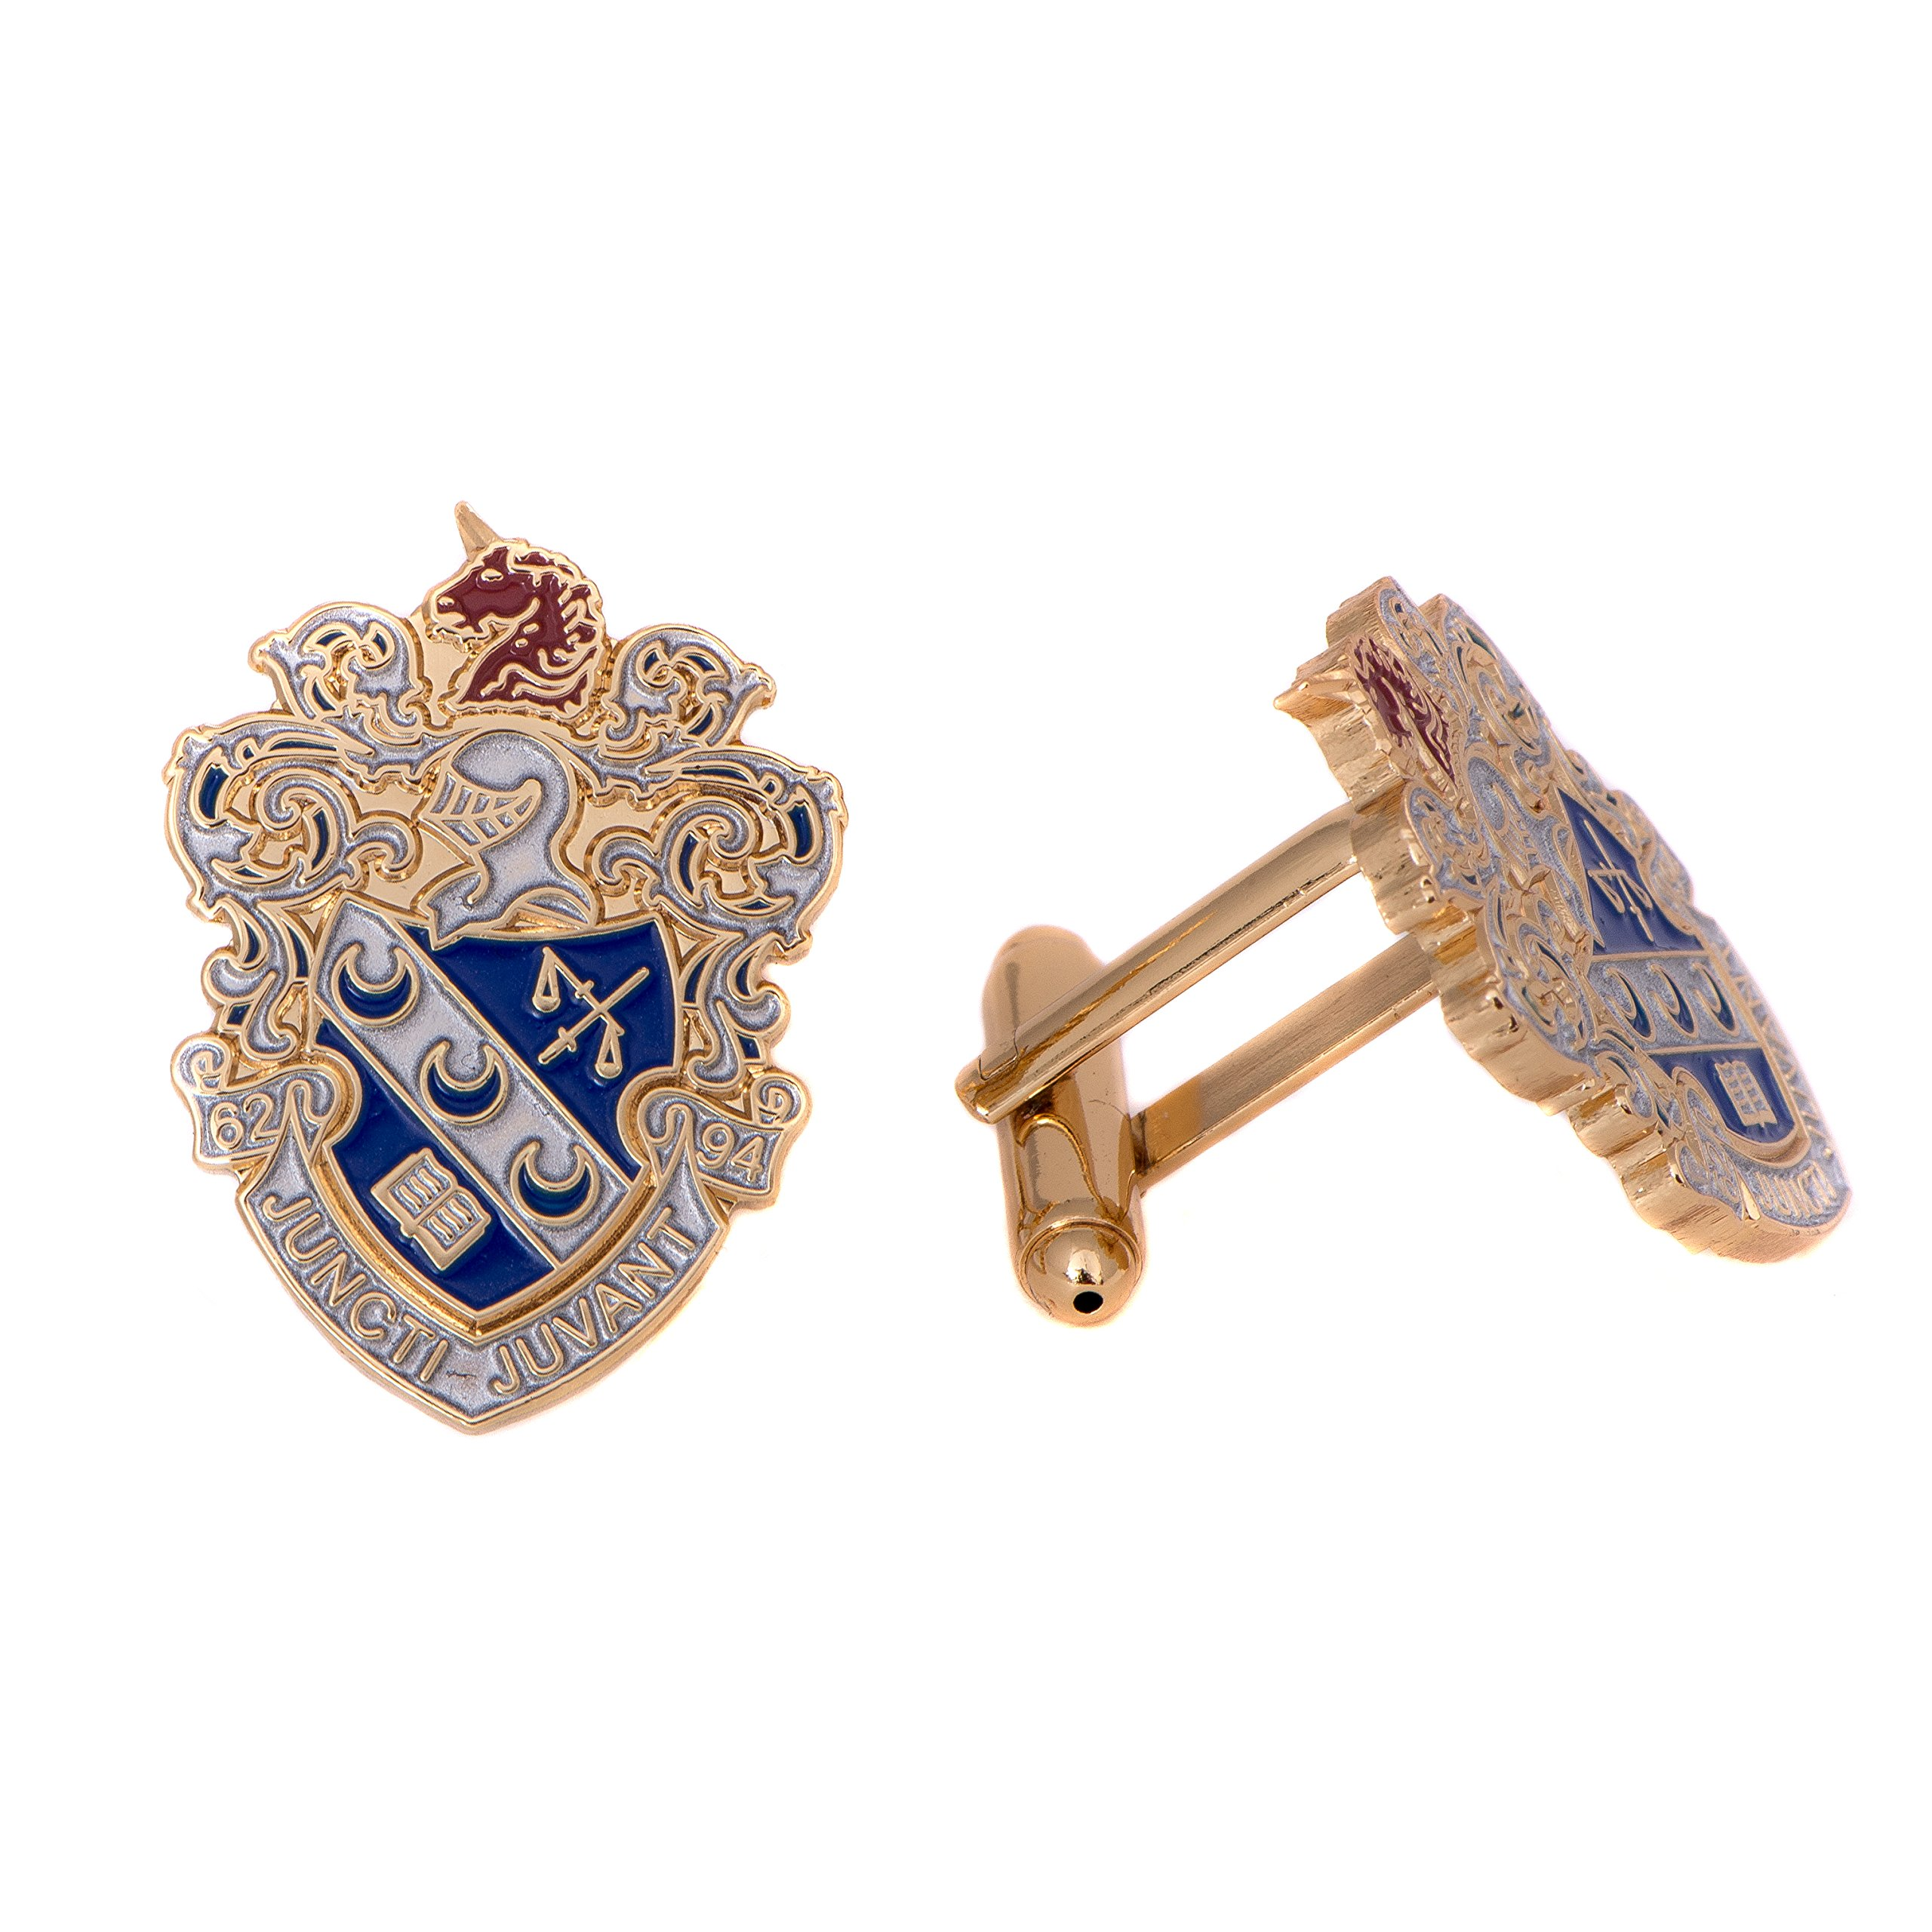 Desert Cactus Theta Xi Fraternity Crest Cufflinks Greek Formal Wear Blazer Jacket